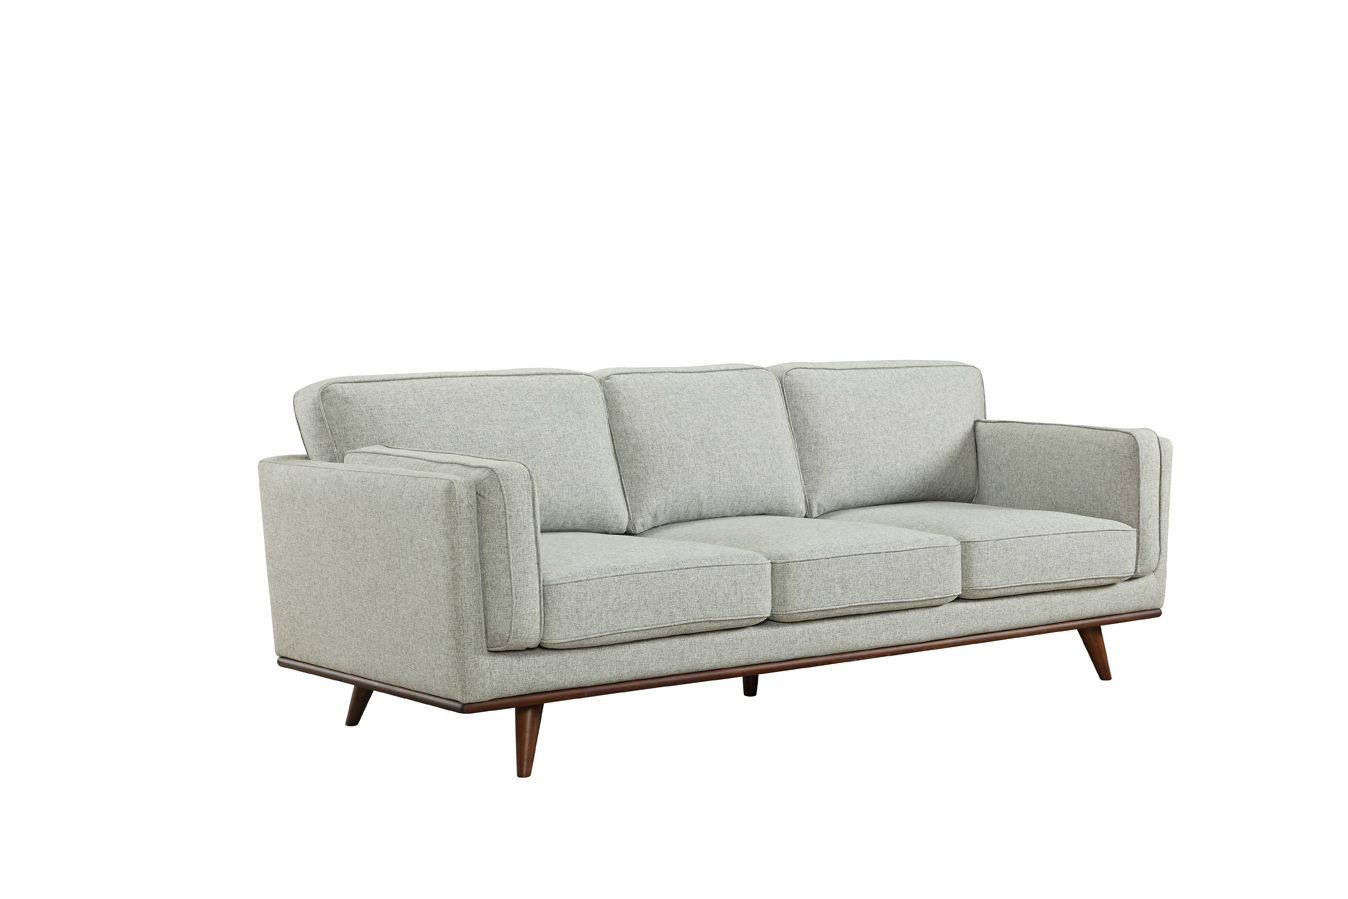 Camden Sofa Camden Sofa In Three Sizes Creative Clics Thesofa